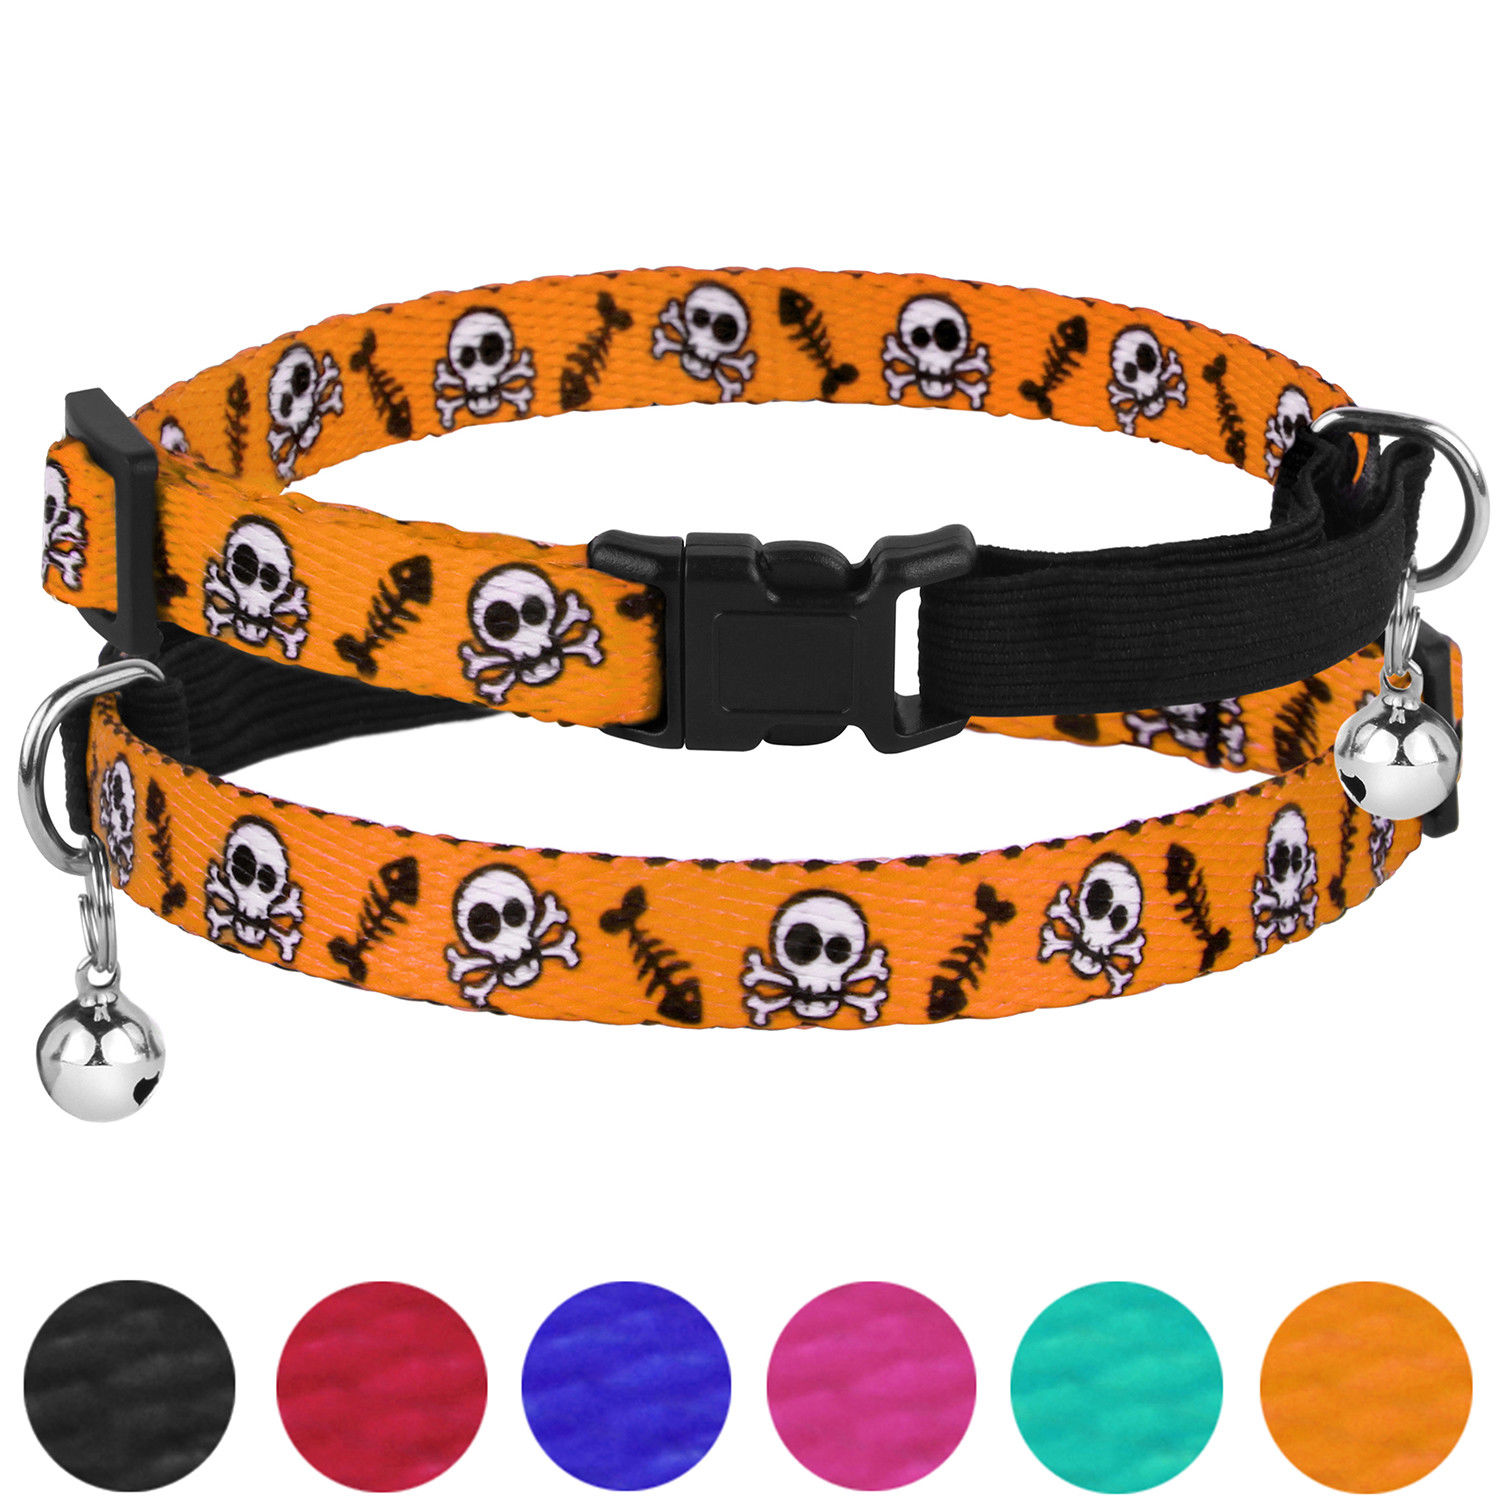 Breakaway Cat Collar Skull Print Safety Collars for Cats Kitten with Bell Elastic Strap Adjustable Size 7-11 Inch, Green